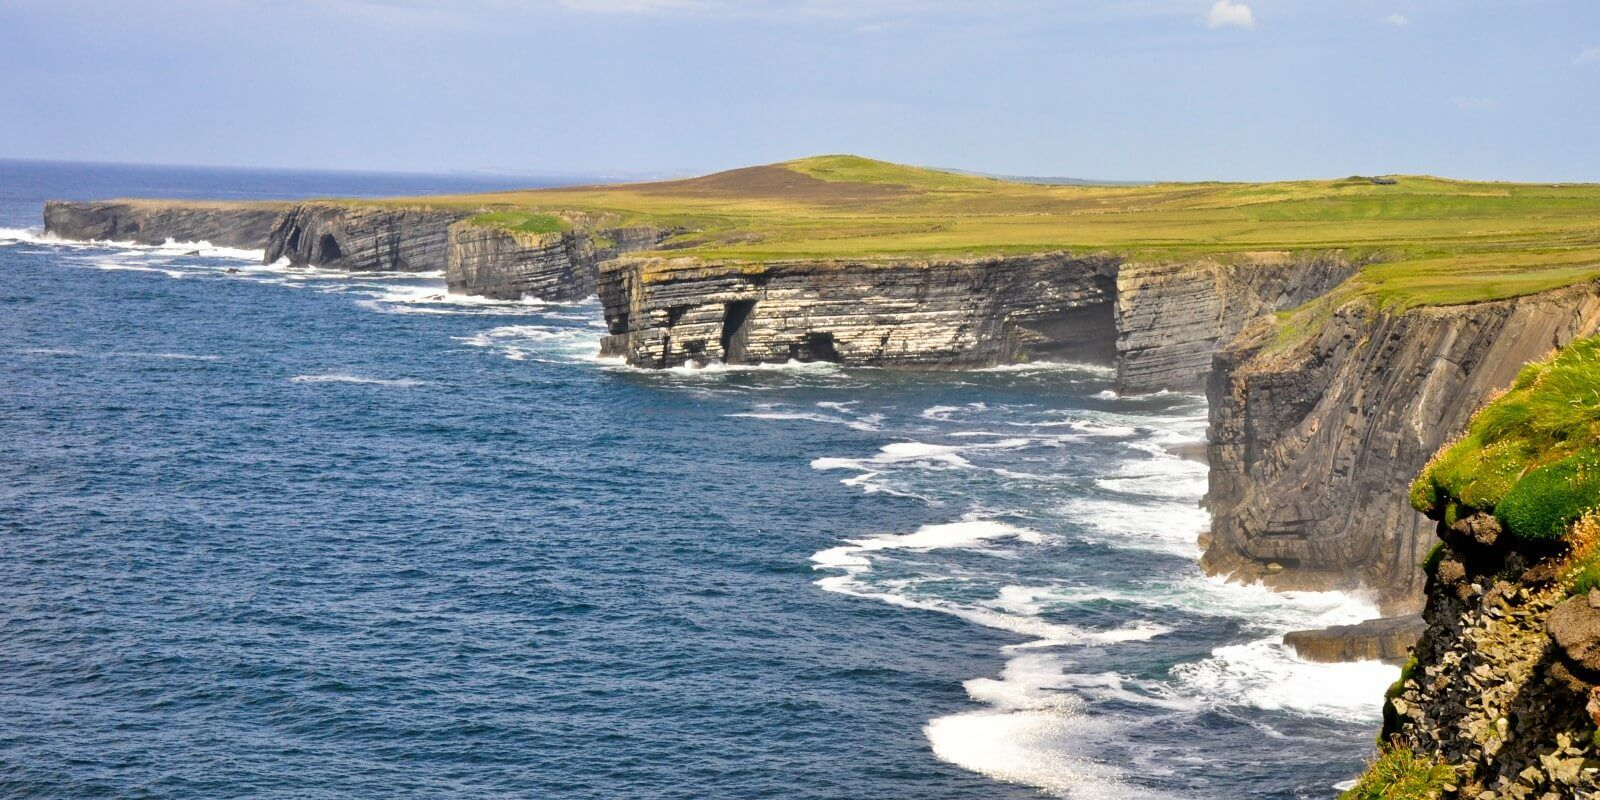 Kilkee Townhouse Cliffs of Moher